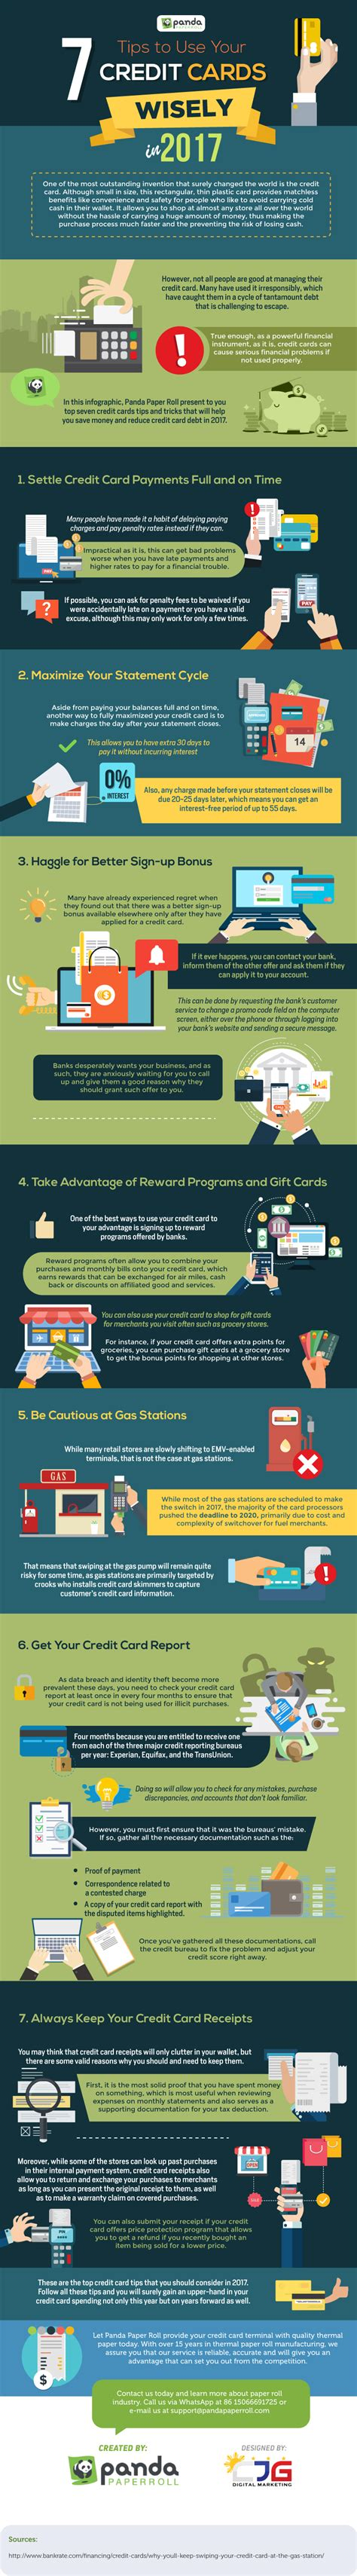 how to use credit cards wisely and make money 7 tips to use your credit cards wisely in 2017 infographic